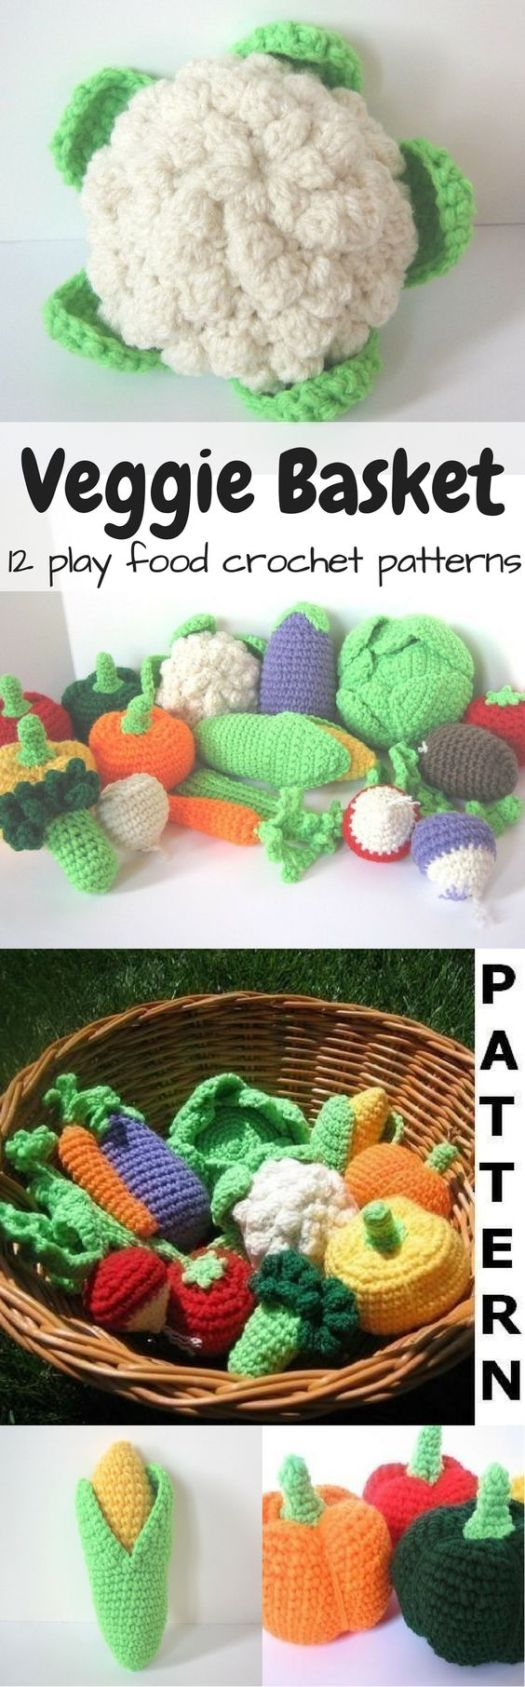 12 amazing vegetable crochet play food patterns to make this lovely basket full of veggies! What a fun idea for a child with a toy kitchen! I love the cauliflower! So great! Makes me wish my kids were little again!